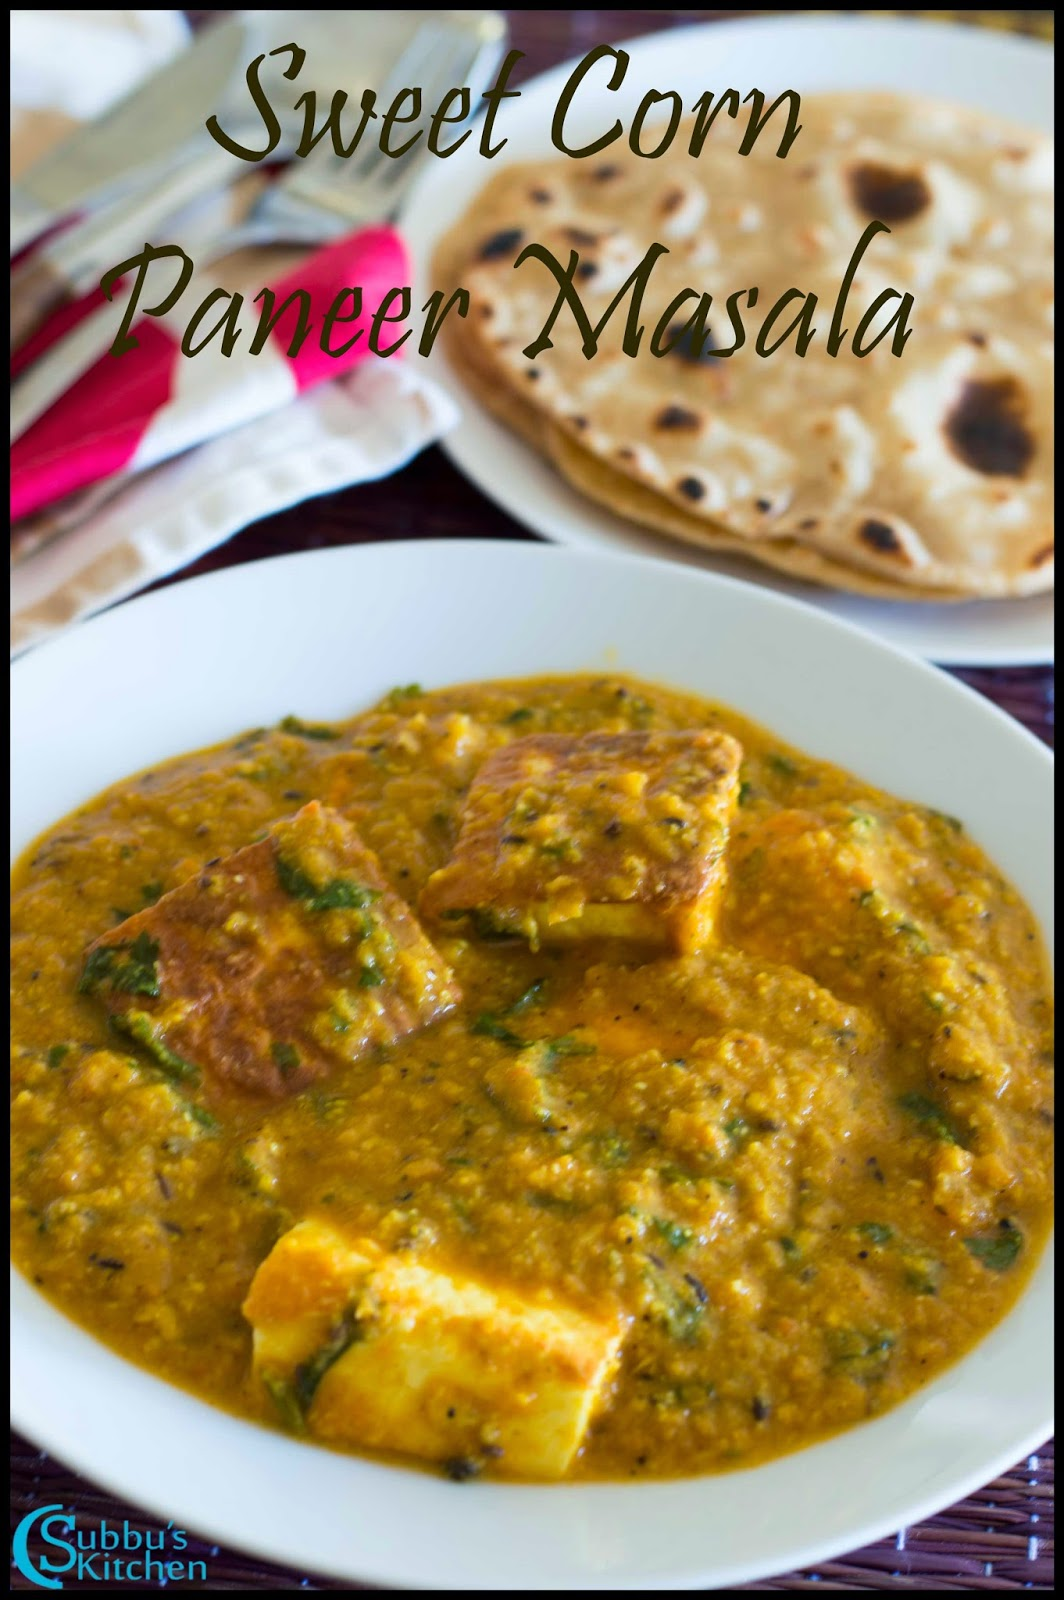 SweetCorn Paneer Masala Recipe